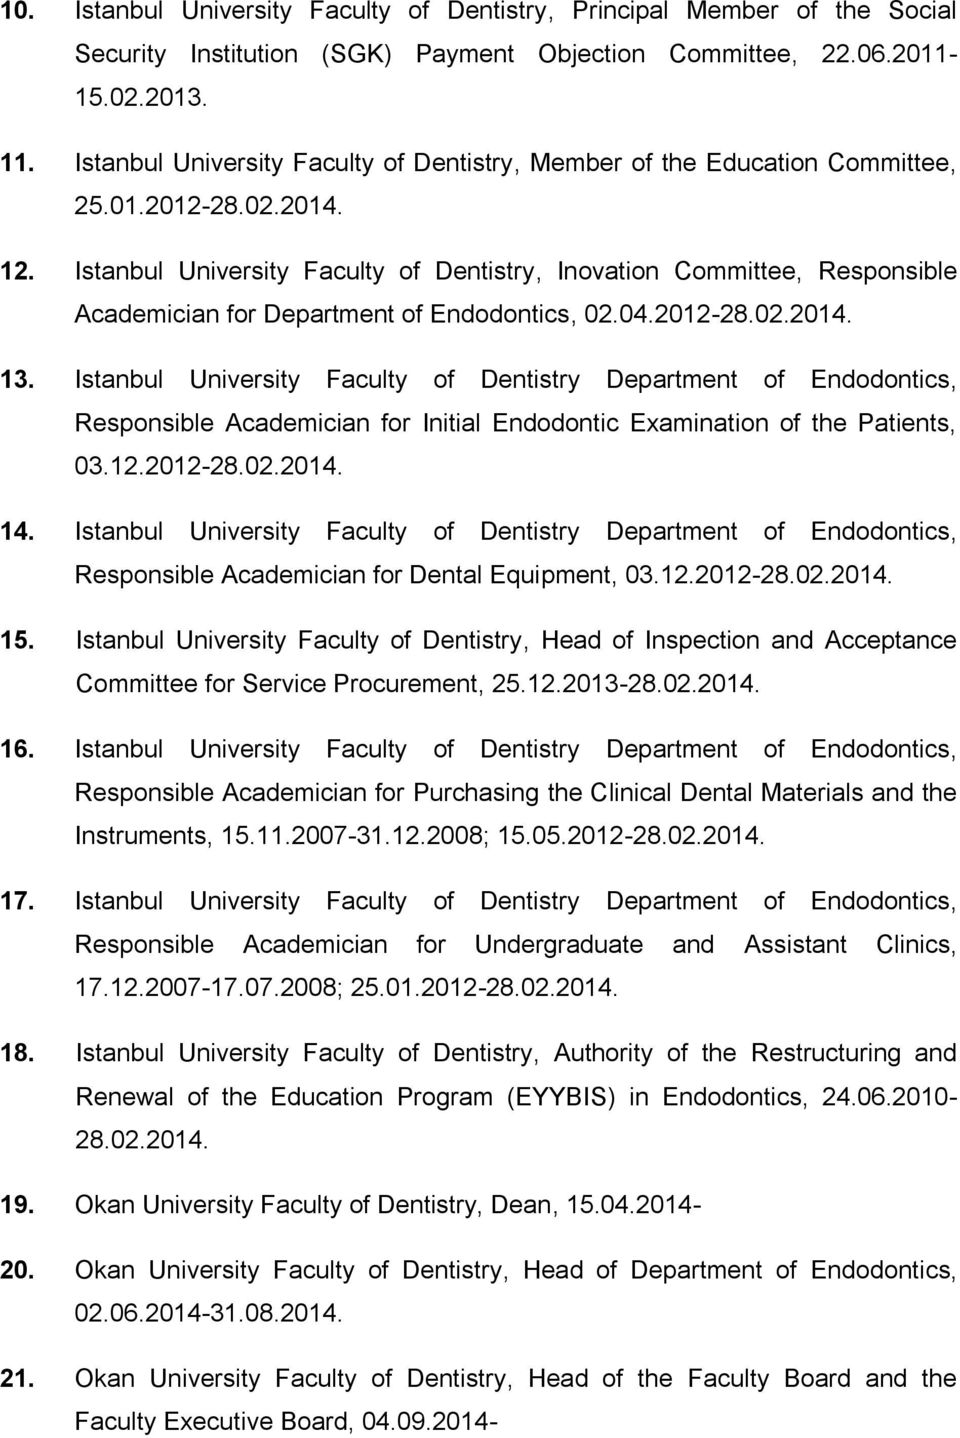 Istanbul University Faculty of Dentistry, Inovation Committee, Responsible Academician for Department of Endodontics, 02.04.2012-28.02.2014. 13.